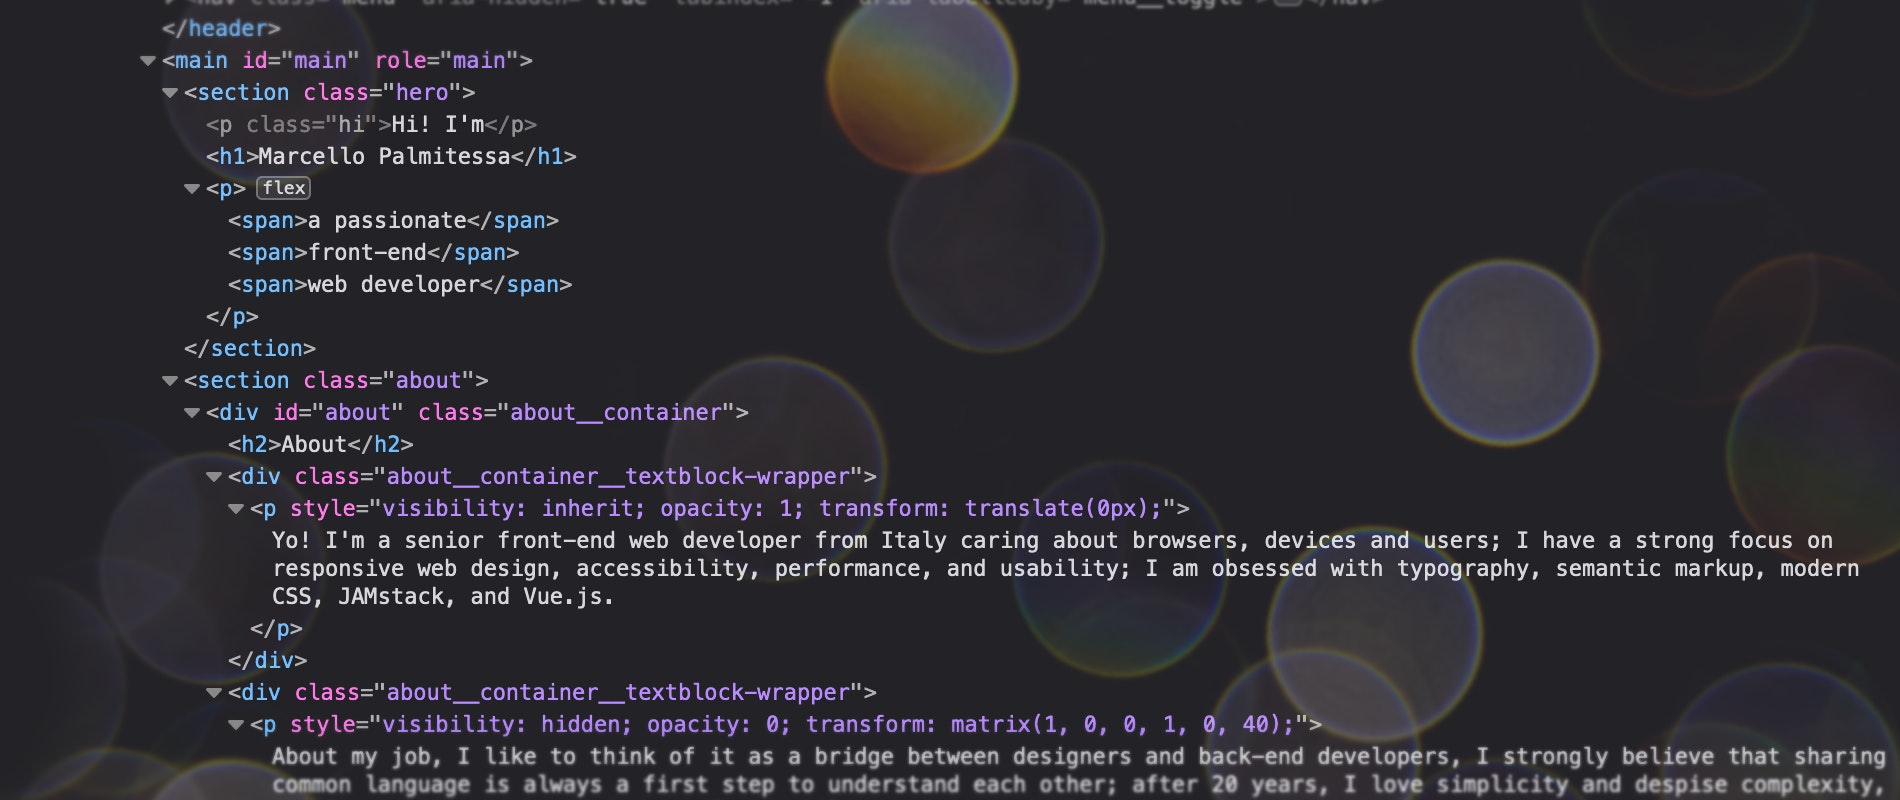 html code from my personal website